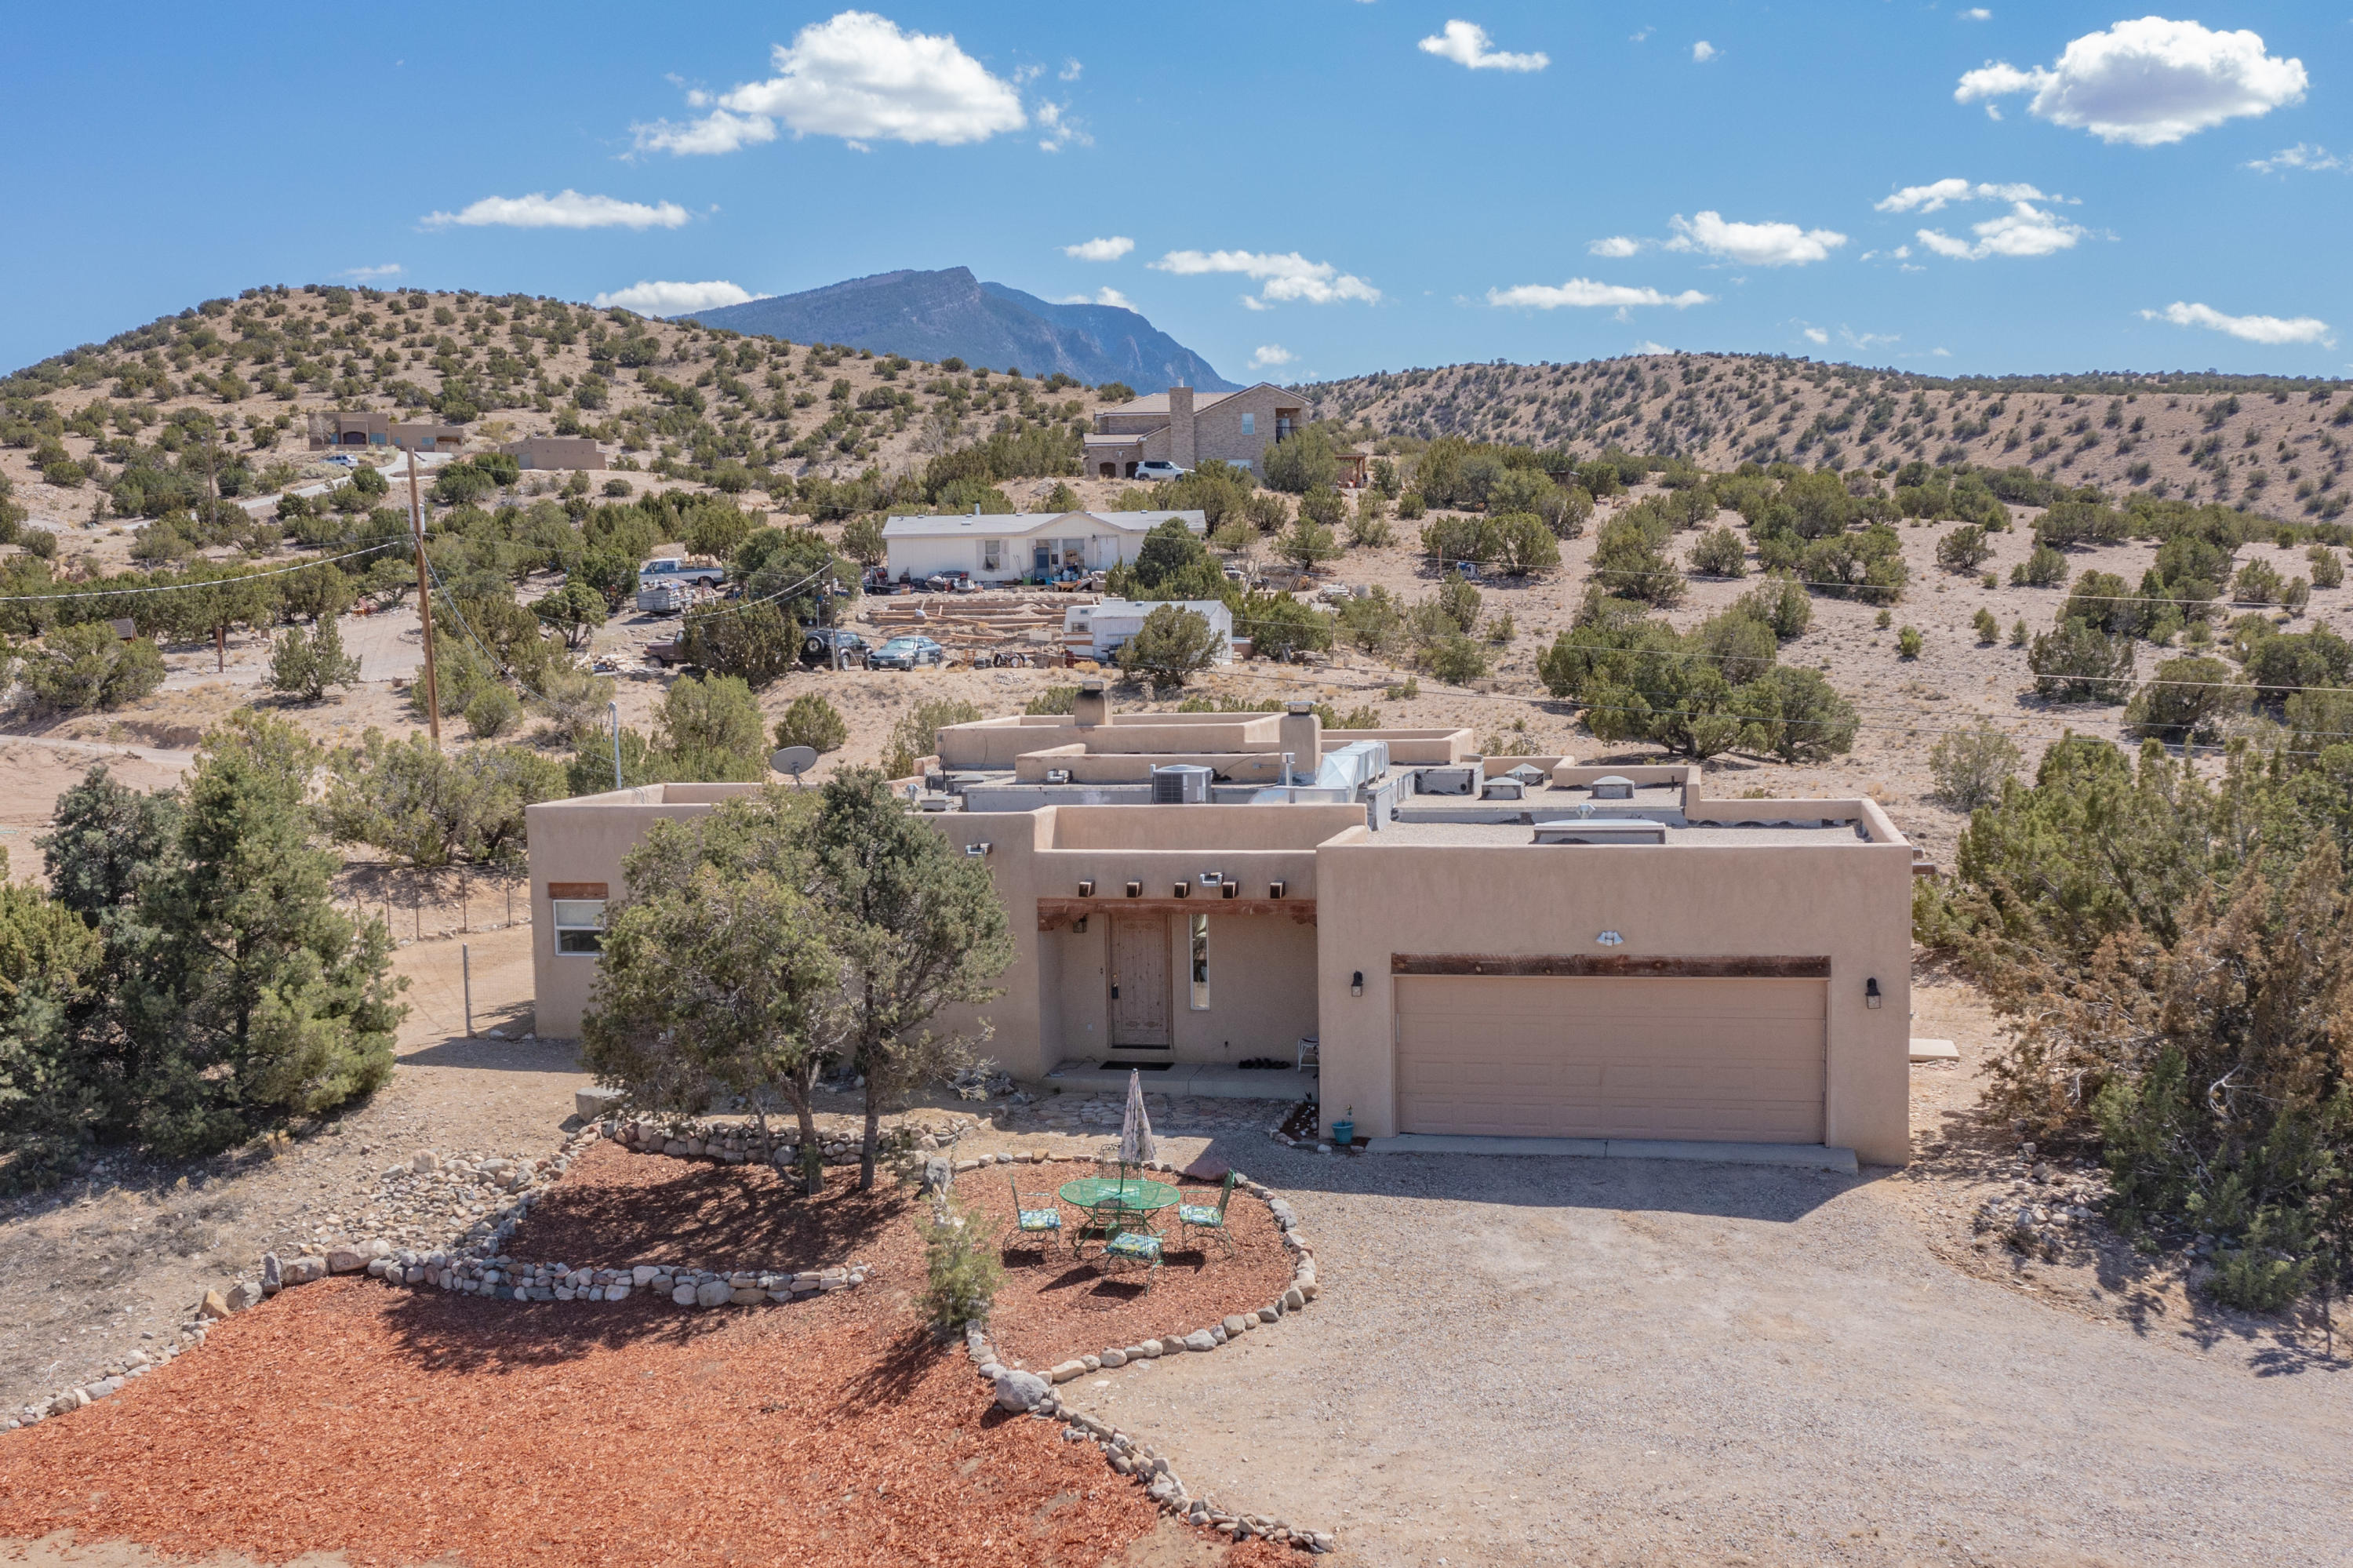 This beautiful custom Southwestern style 2 bed 1 bath home on 1.29 acres offers privacy and amazing views in the wide open Placitas high desert! 2 large bedrooms, office off 2nd living room could be a 3rd bedroom, large bathroom with garden tub & tile shower. With ample natural light from the huge windows and skylights, raised wood ceilings, 2 kiva fireplaces, adobe accent walls, and large rooms this spacious home is a true New Mexican gem! So many lovely private outside places to enjoy the breath-taking sunsets and clear night skies, plus a fenced backyard. Open-concept floorpan includes a grand foyer, large kitchen w/ granite counters, new deep basin farm sink & faucet & ample cabinet space, laundry room w/ extra storage. New house well pressure tank, leased propane tank, septic tank.